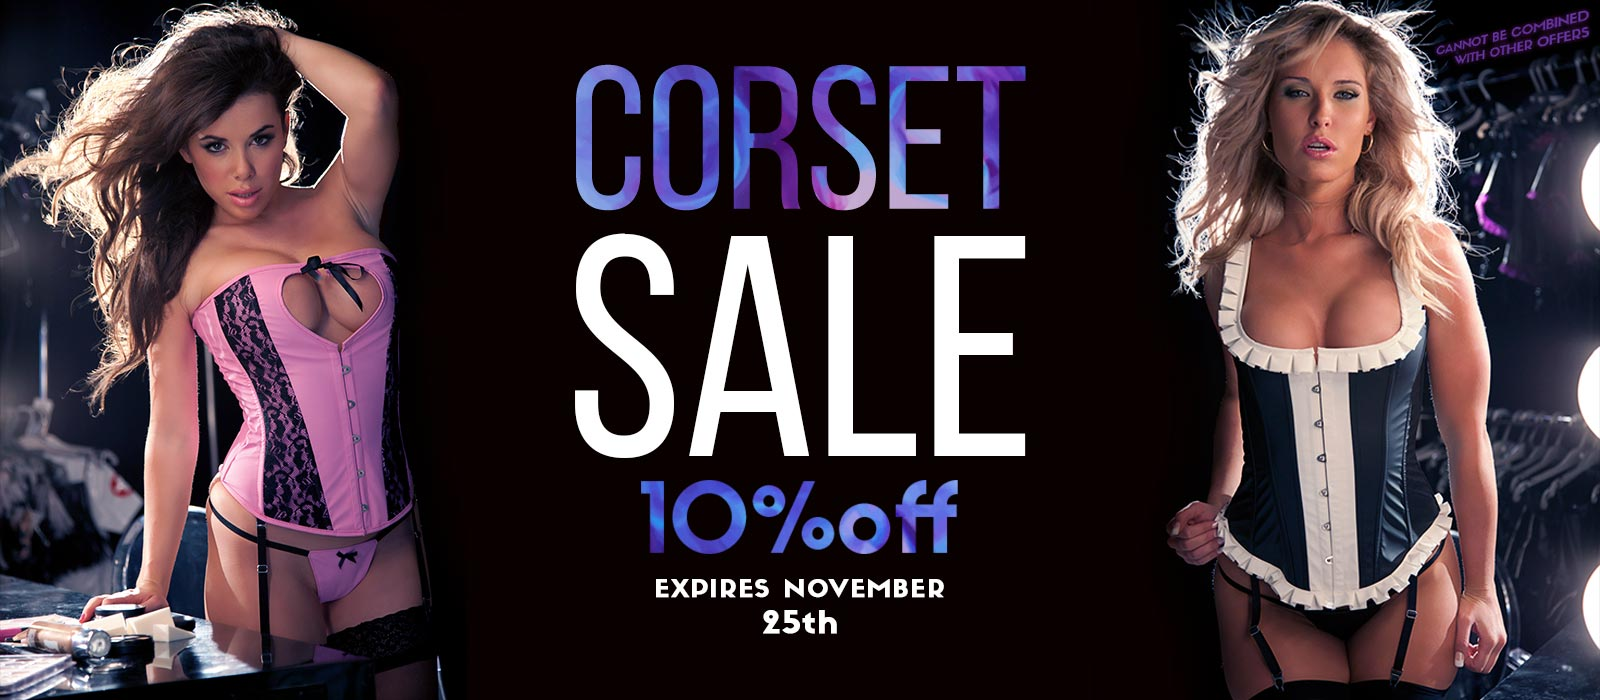 Fetish Corset Sale 10% Off expires 10/25/16